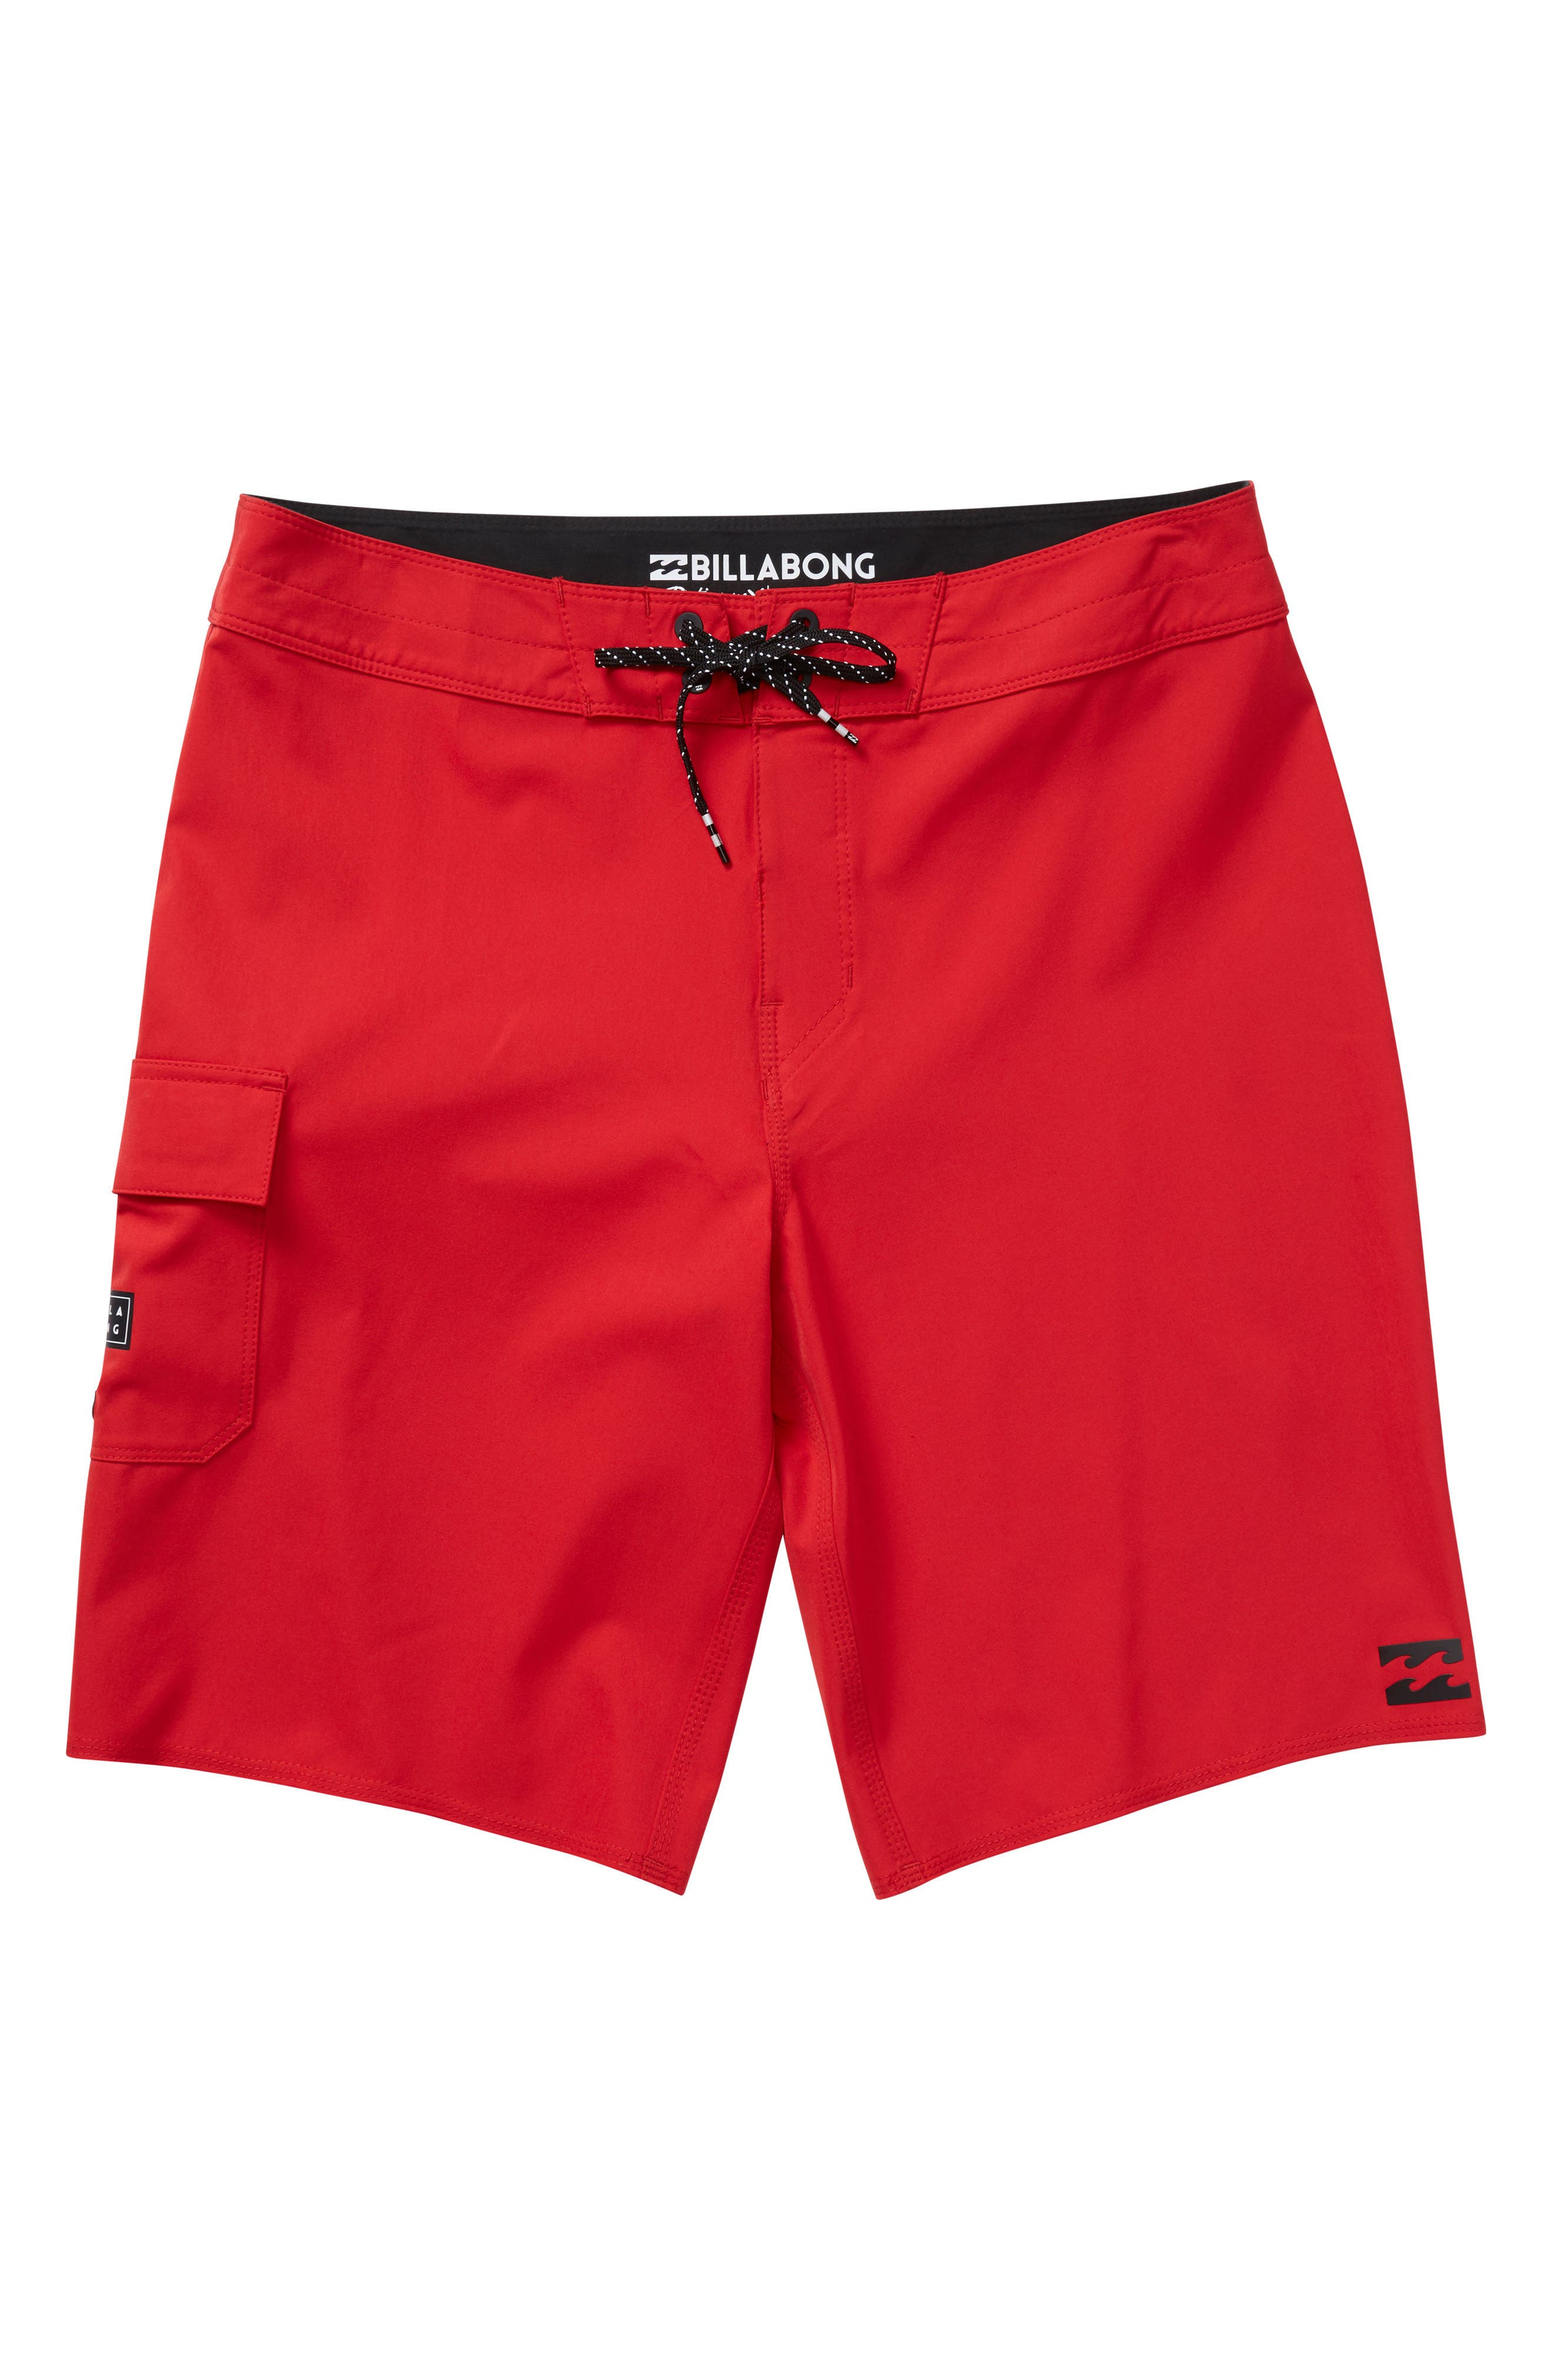 All Day X Board Shorts,                             Main thumbnail 1, color,                             RED